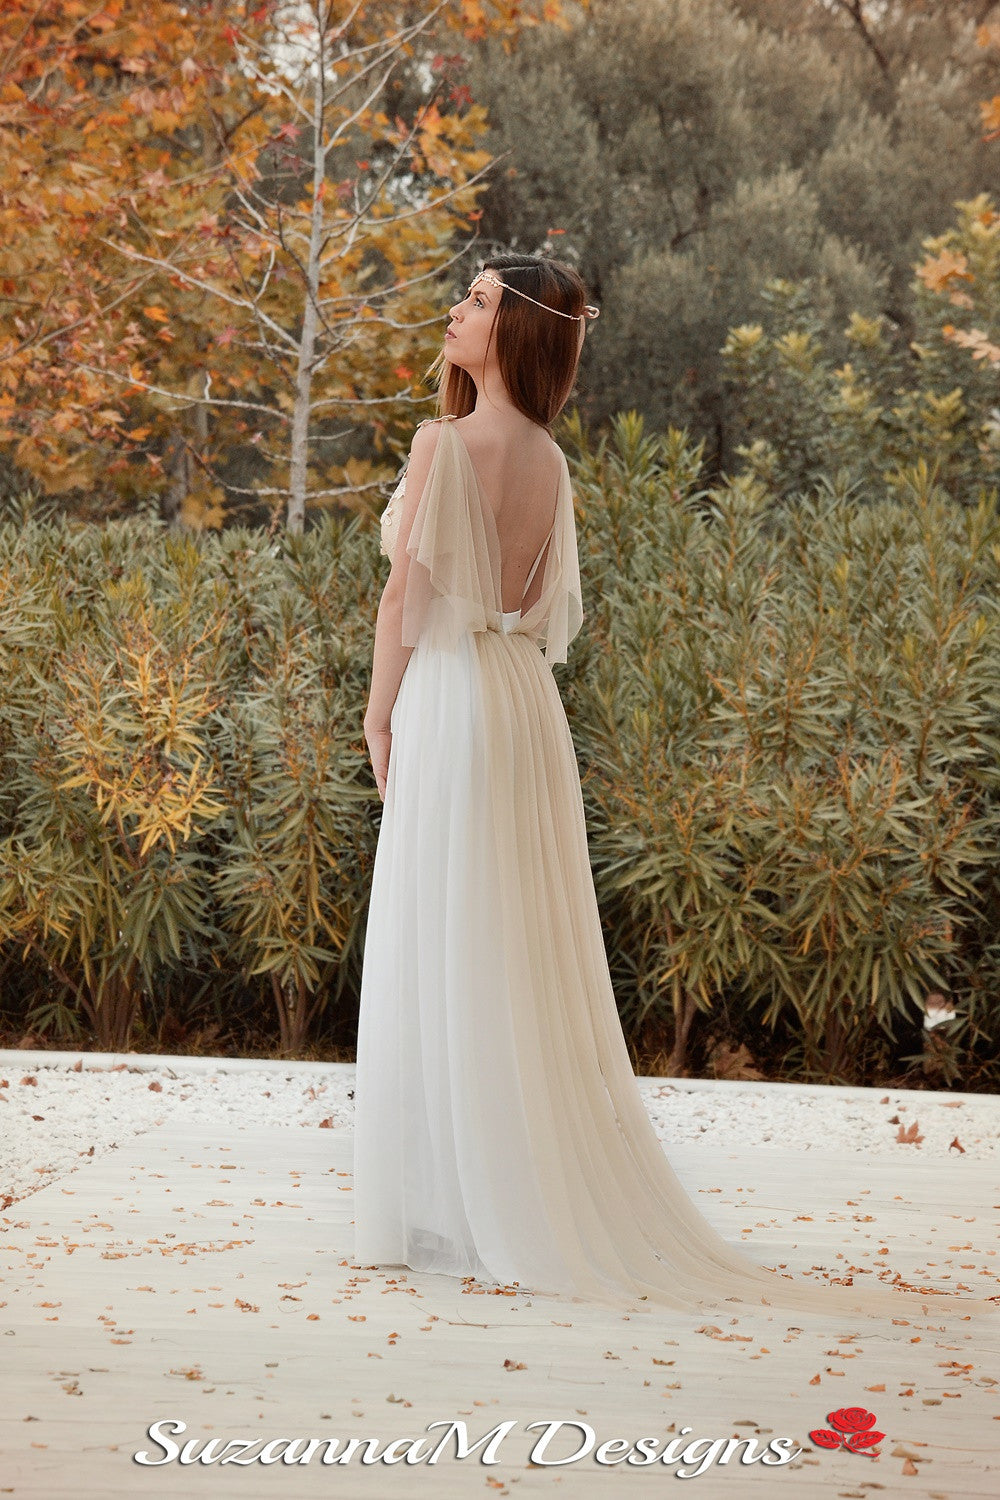 Adrienne Handmade Grecian Wedding Gown